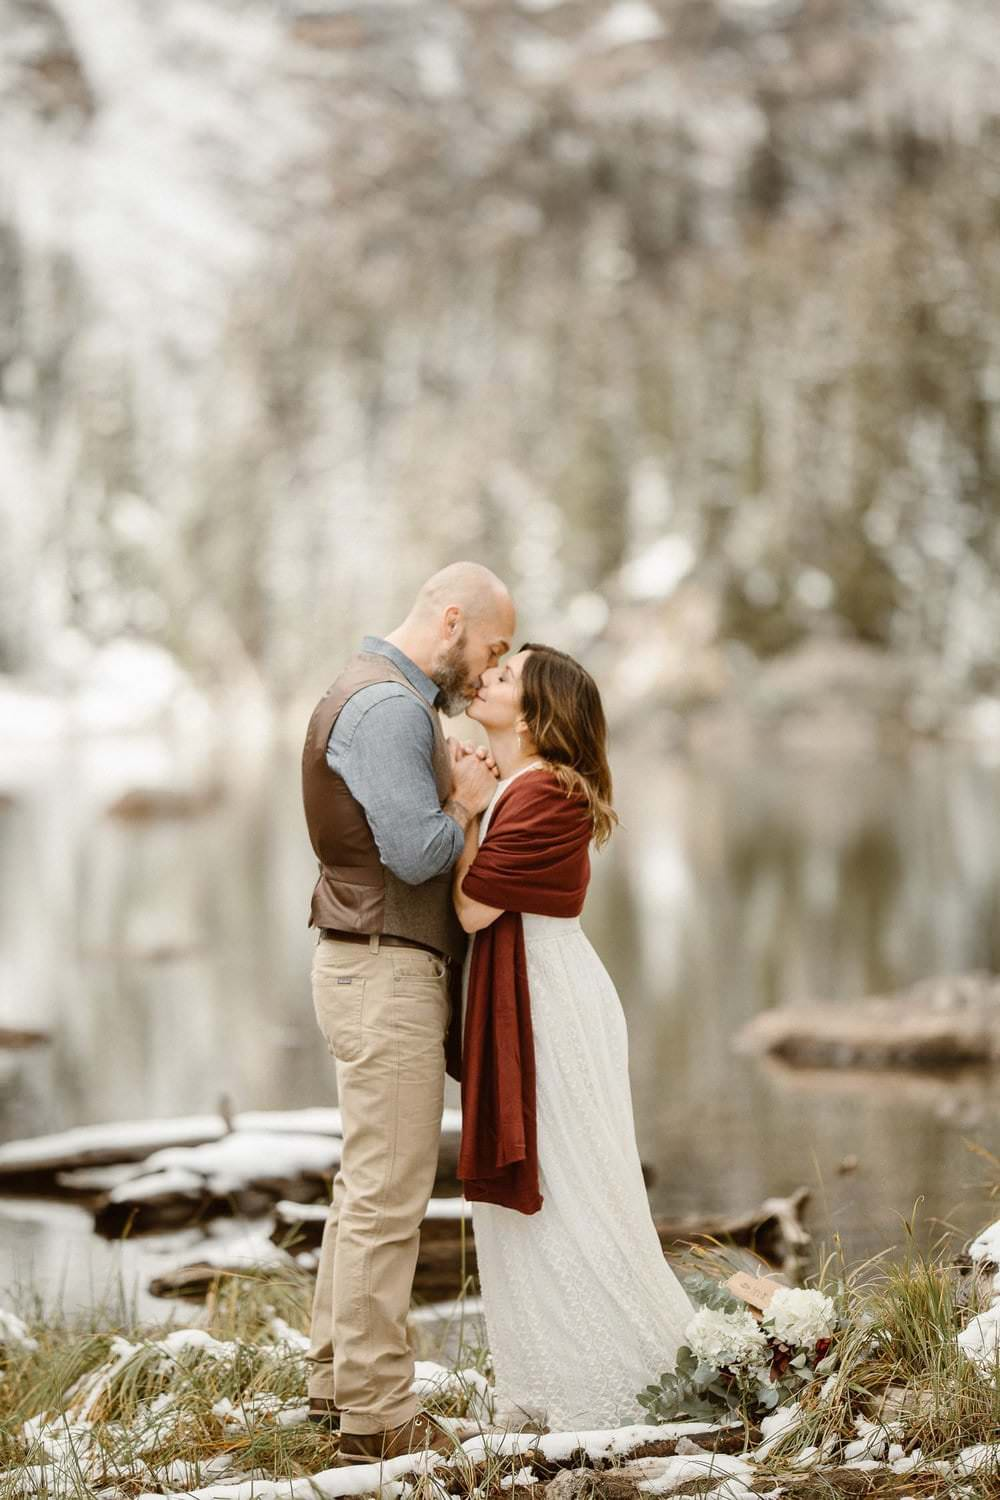 ROCKY MOUNTAIN NATIONAL PARK ELOPEMENT |COLORADO ELOPEMENT PHOTOGRAPHER|DESTINATION WEDDING PHOTOGRAPHER | ROCKY MOUNTAIN NATIONAL PARK WEDDING PHOTOGRAPHER | ADVENTURE